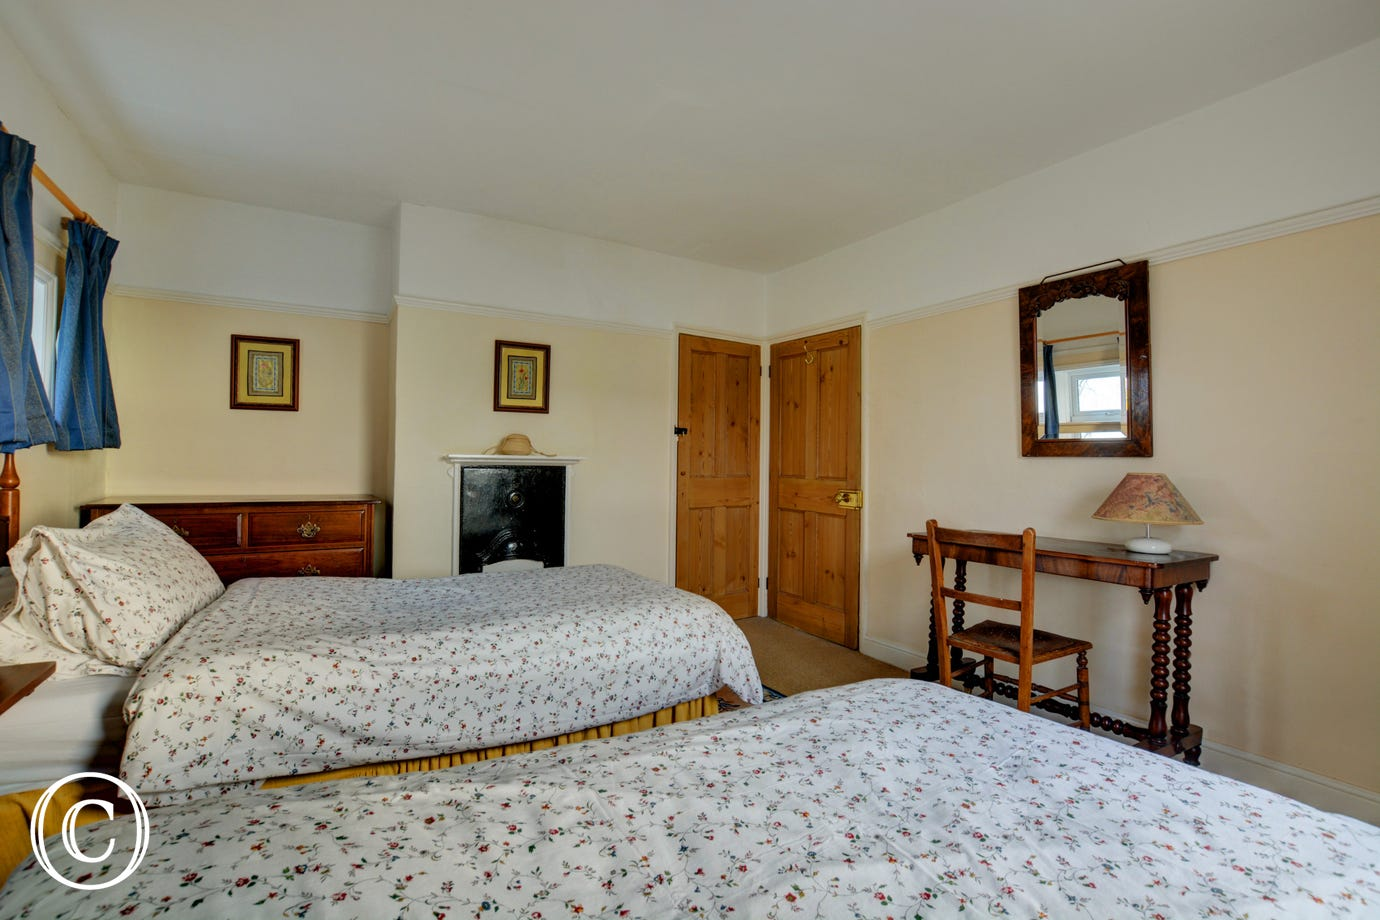 Twin beds and dressing table area in the second bedroom.